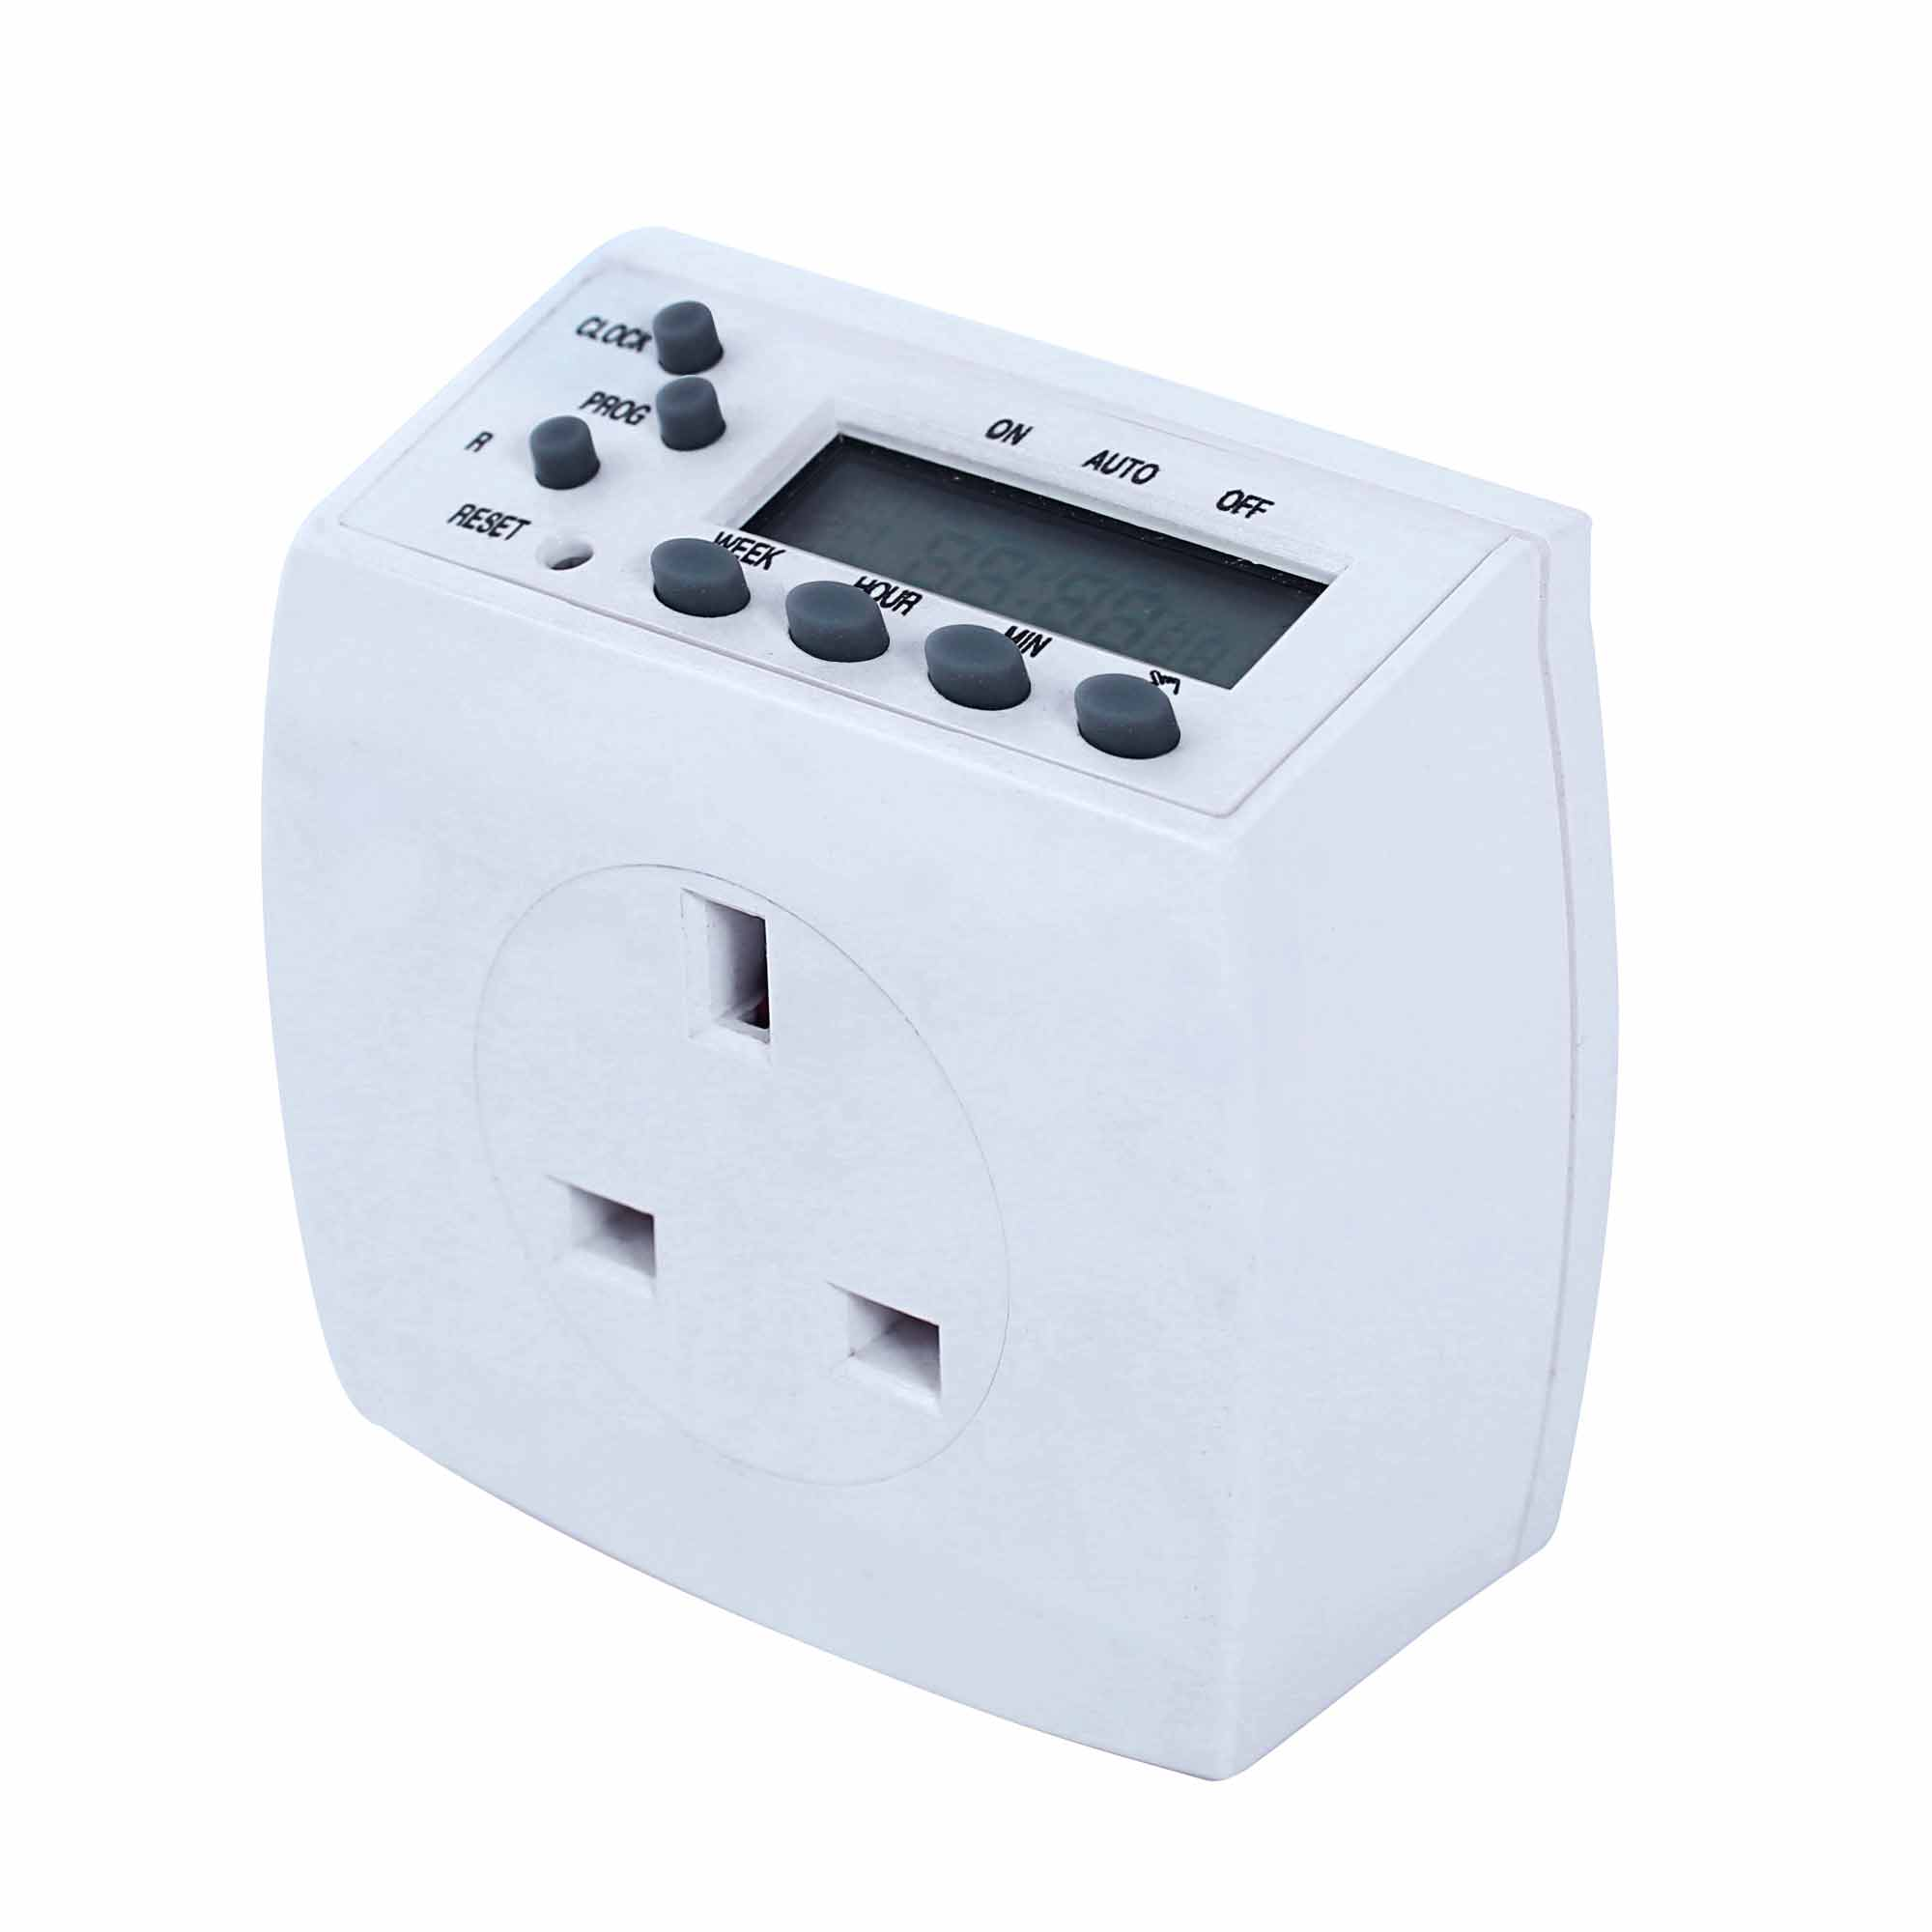 HBN Weekly Energy Saving Plug-In Electronic Timer Switch, BND-50/SE2